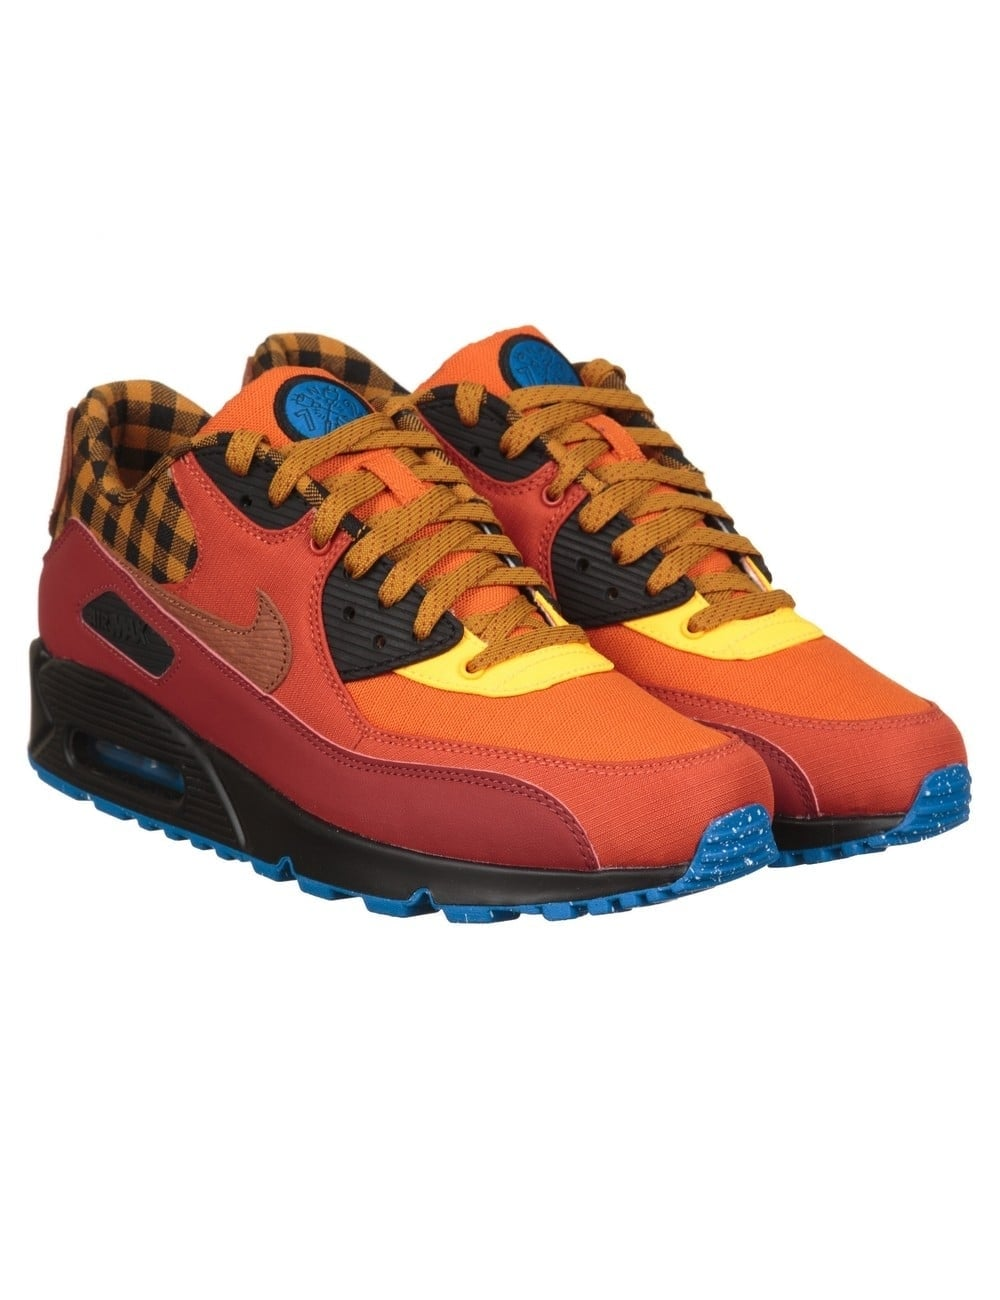 the latest 4b1ab 75bd1 Air Max 90 Premium Shoes - Dark Cayenne/Gold (Campfire Pack)